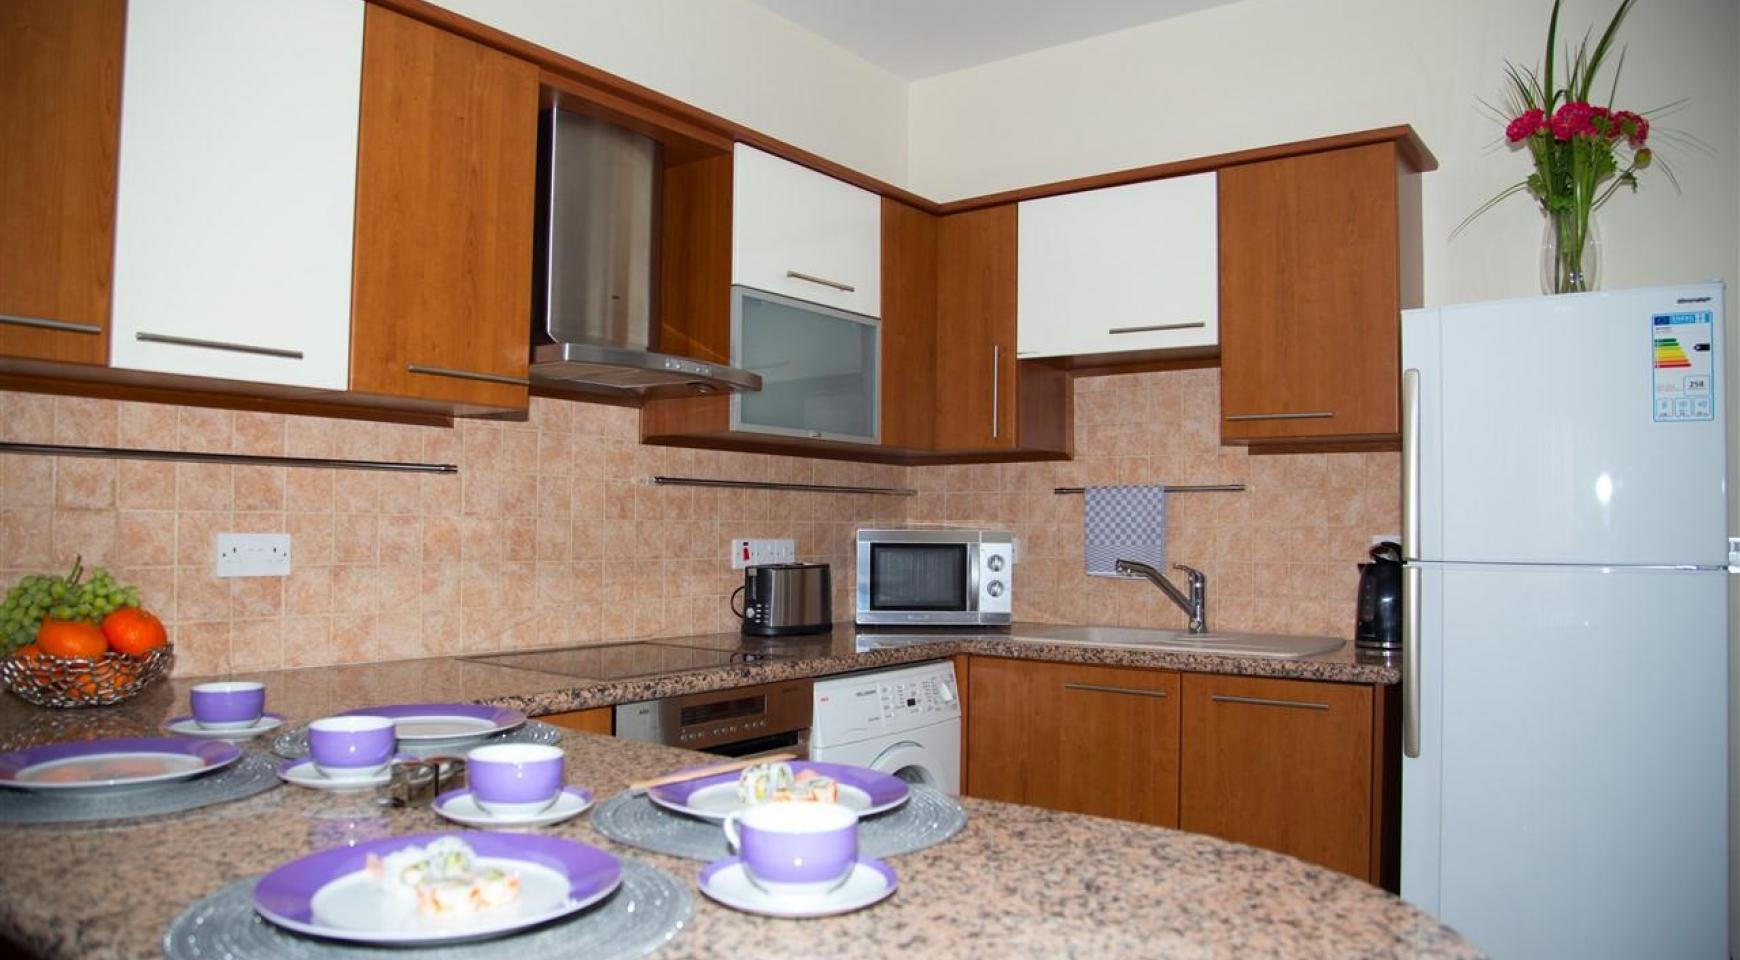 Luxury 2 Bedroom Apartment Mesogios Iris 304 in the Tourist area near the Beach - 12